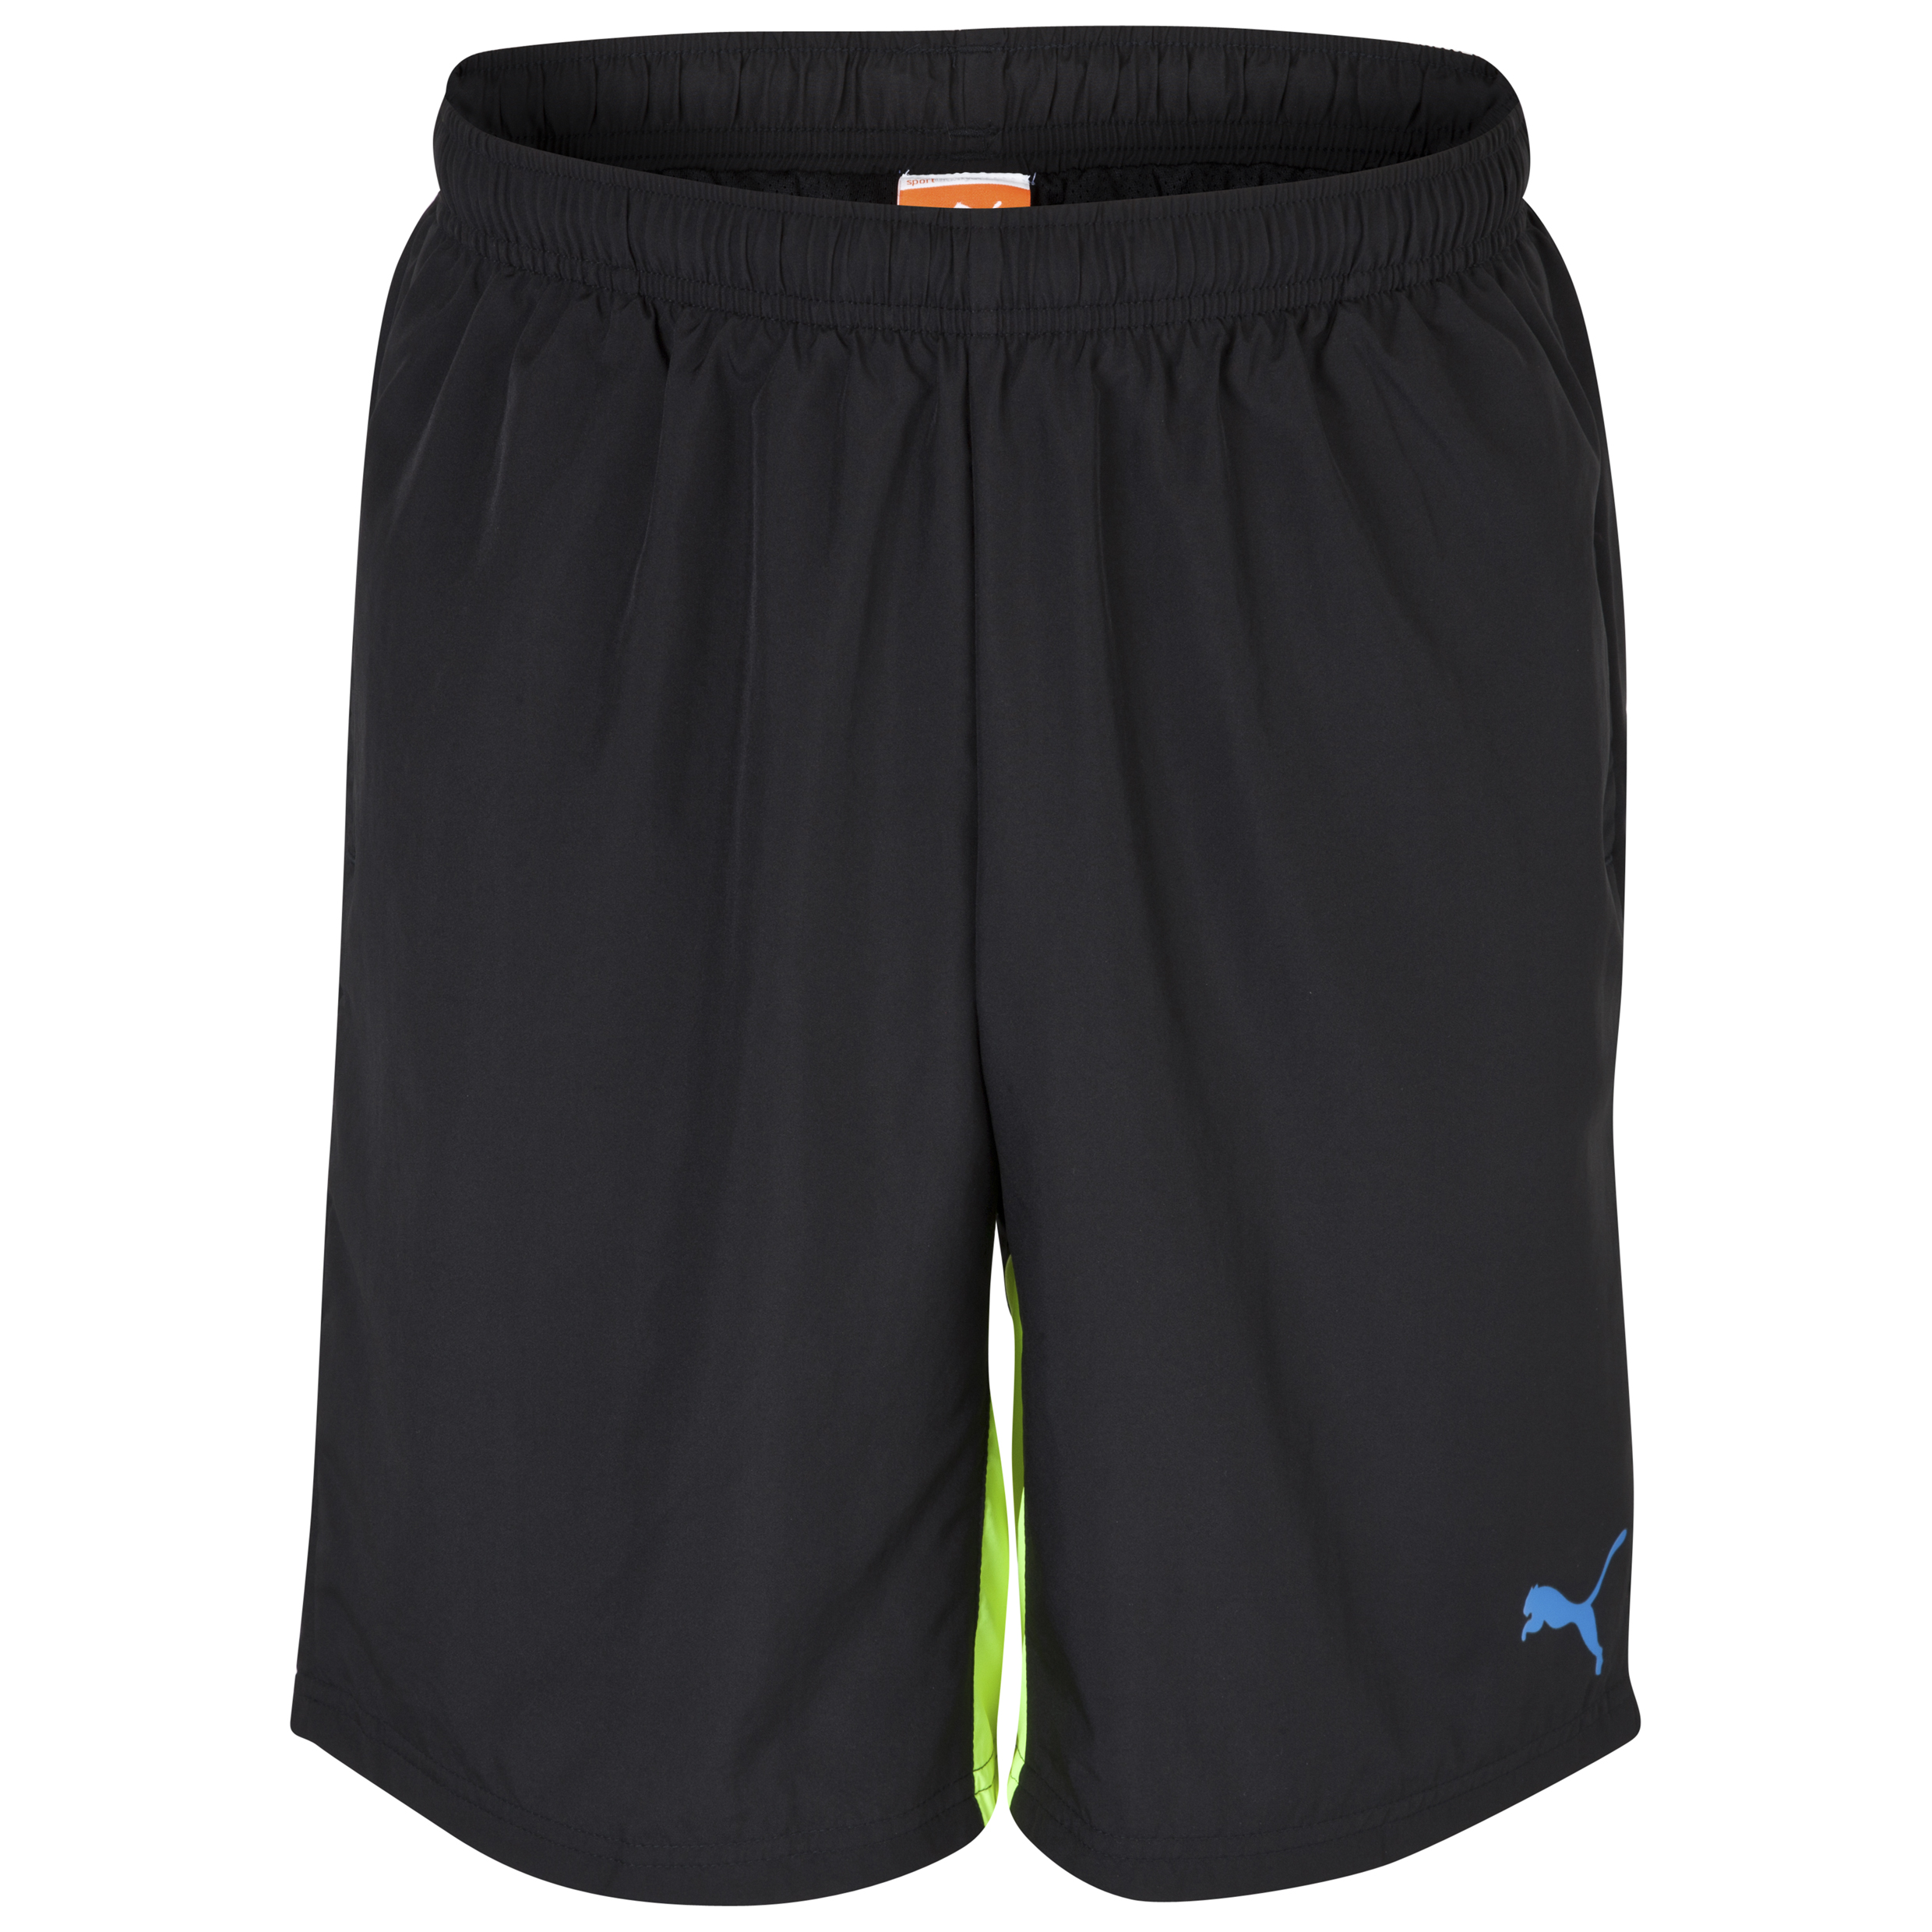 Puma evoSPEED Woven Short Black